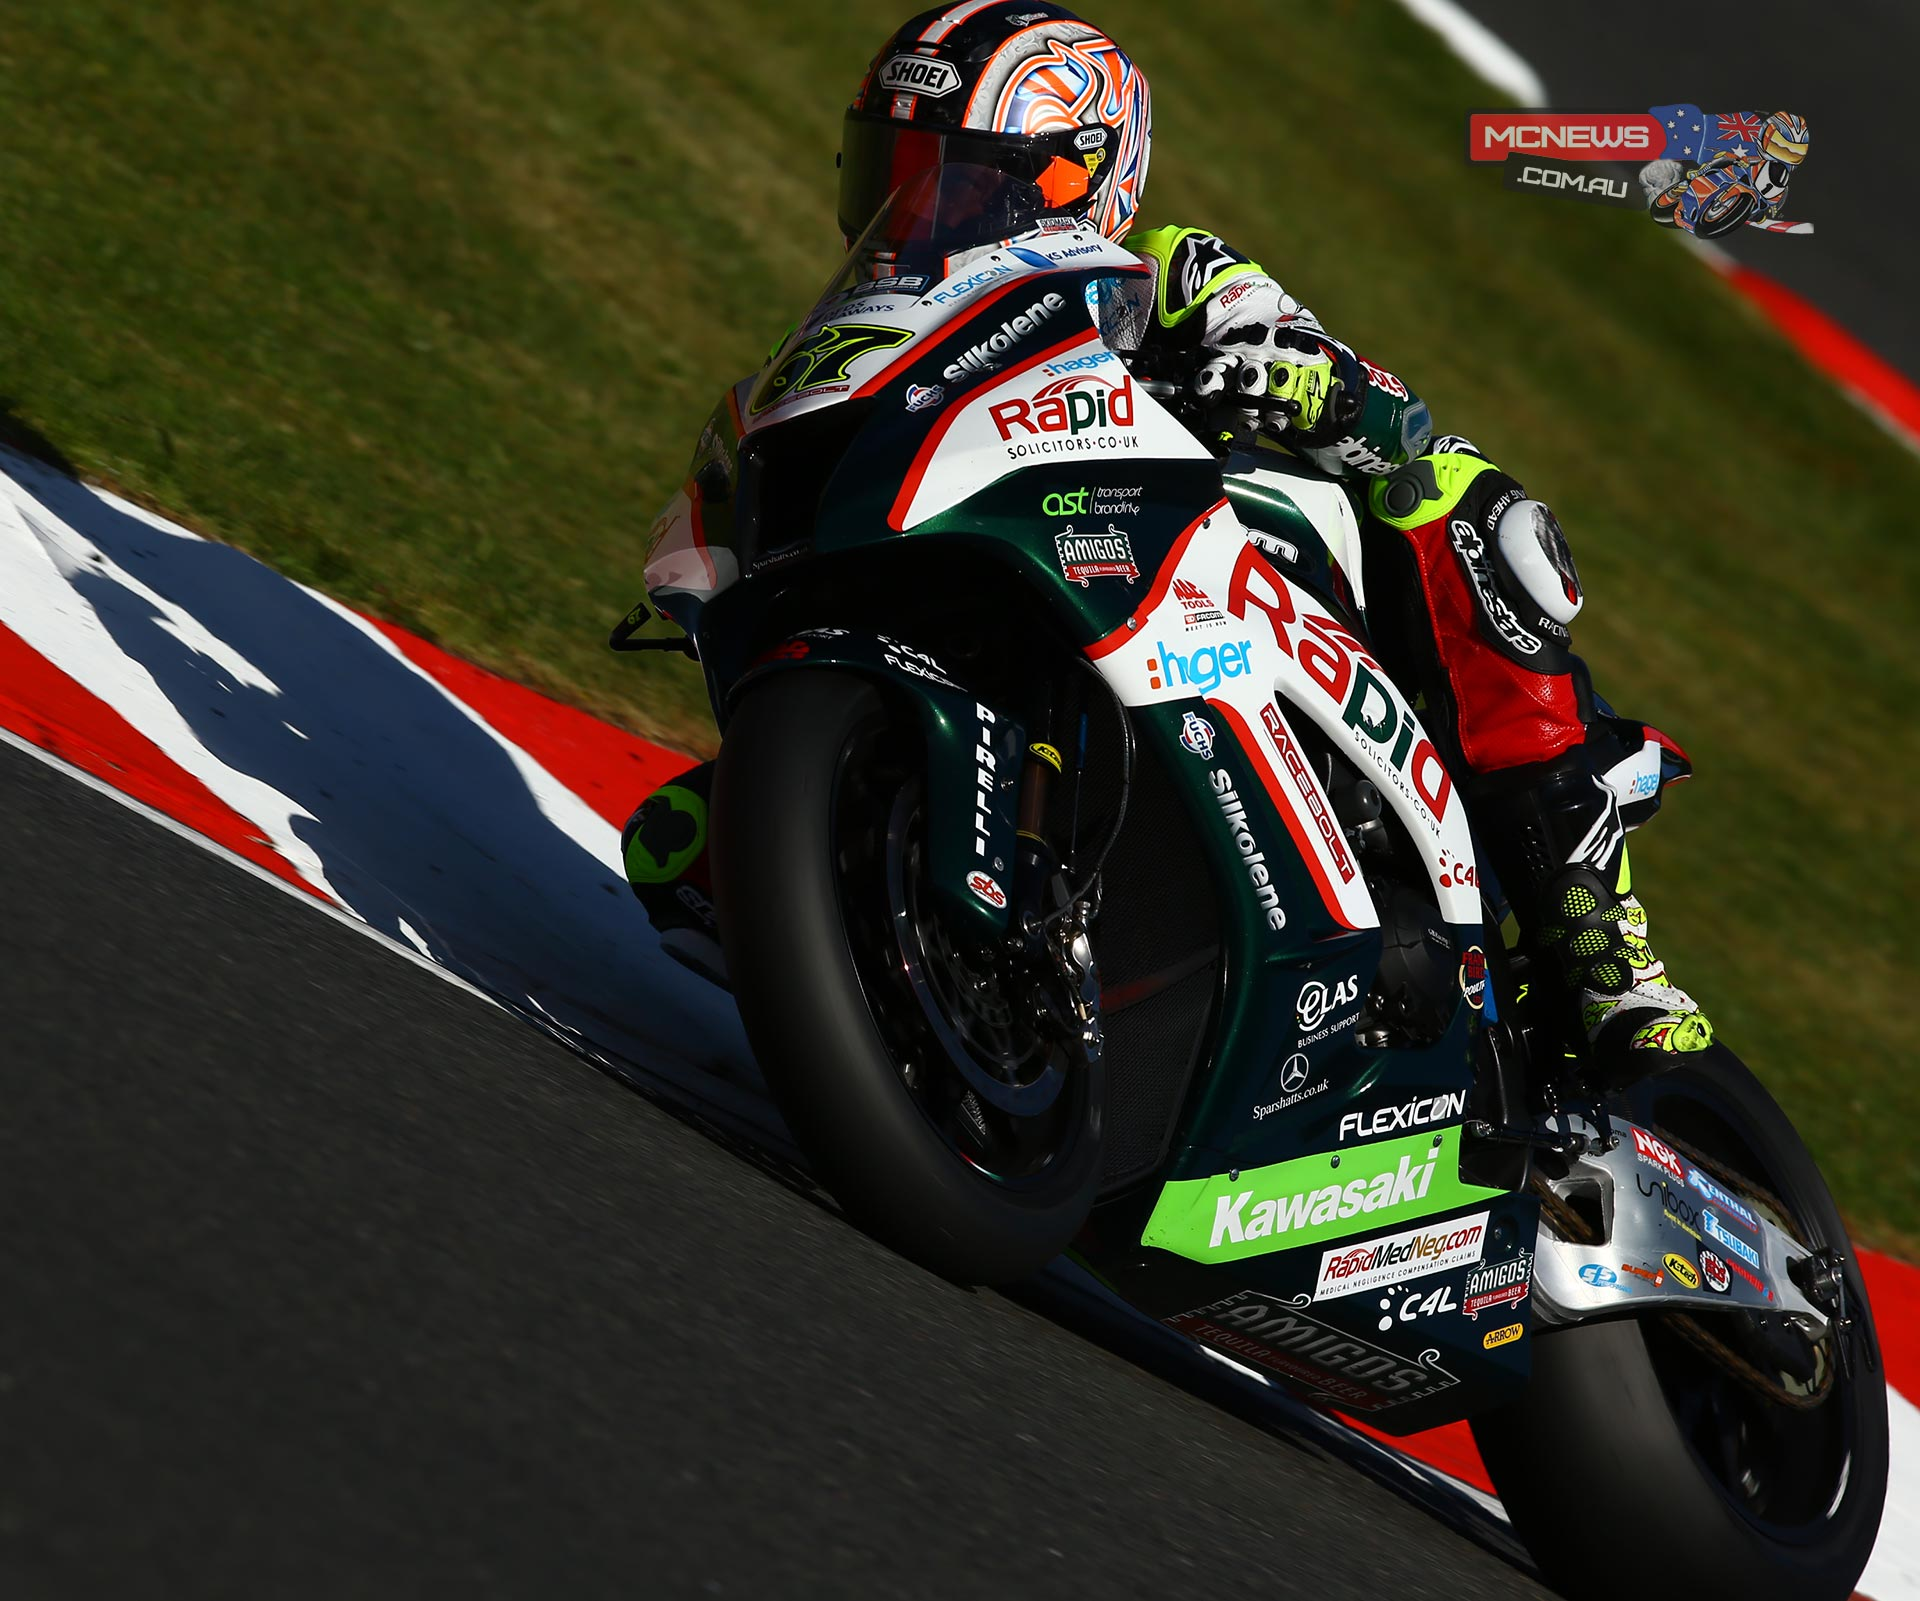 Byrne's third pole came with a lap in 1m 26.131secs, just 0.058secs up on Lloyds British GBmoto Kawasaki's Chris Walker. His team-mate James Ellison completes the front row of the grid after his spell at the top earlier in the session.